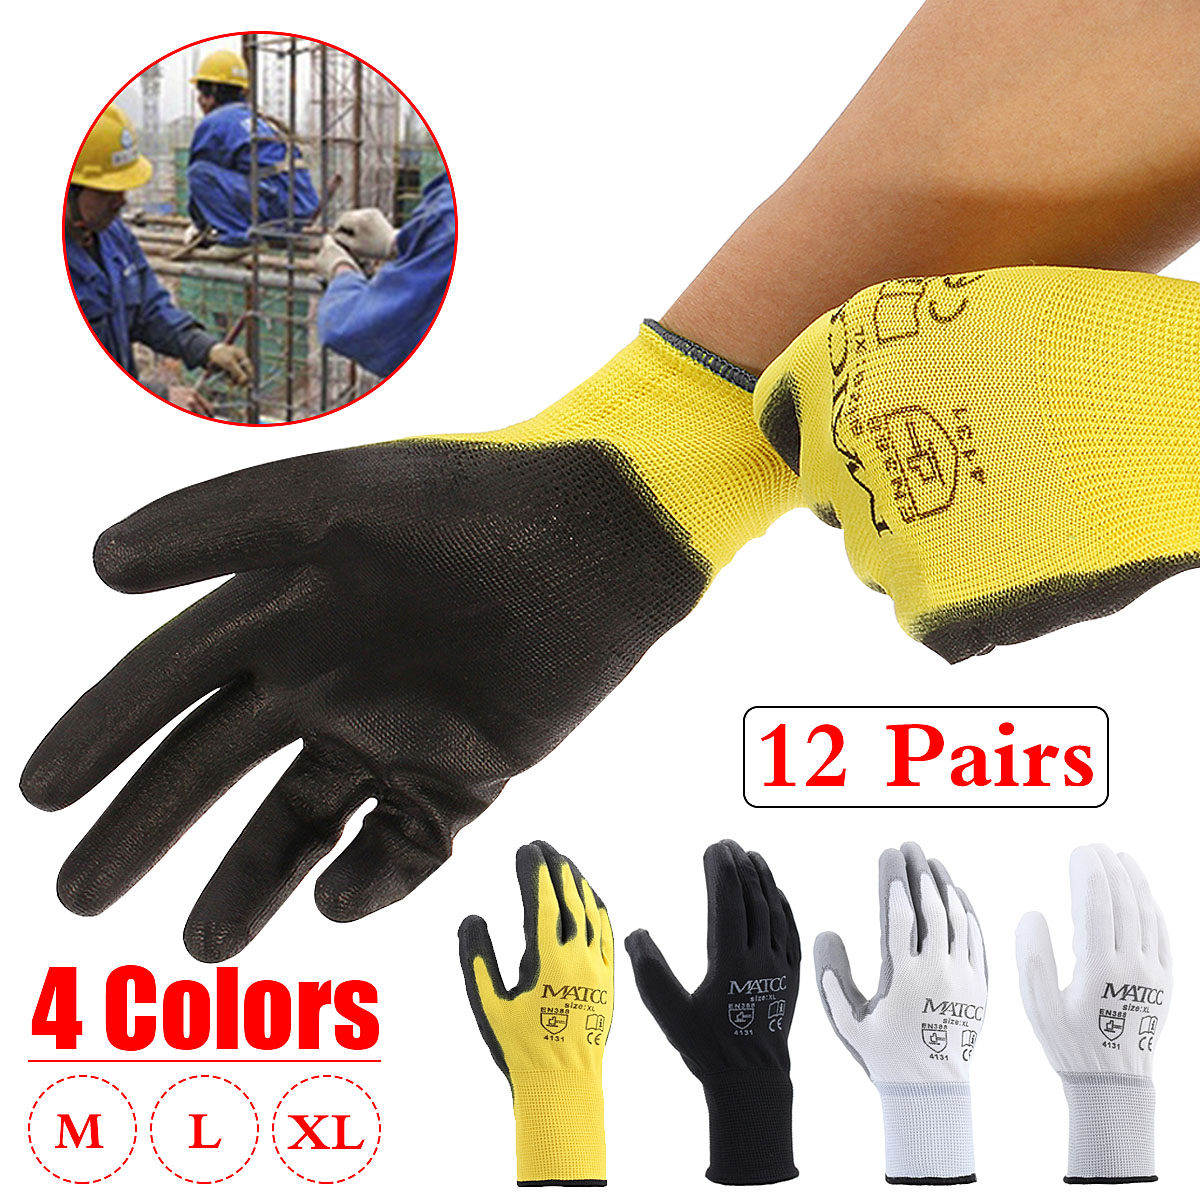 1 12 or 24 PAIRS BLACK NYLON PU COATED SAFETY WORK GLOVES GARDEN GRIP BUILDERS